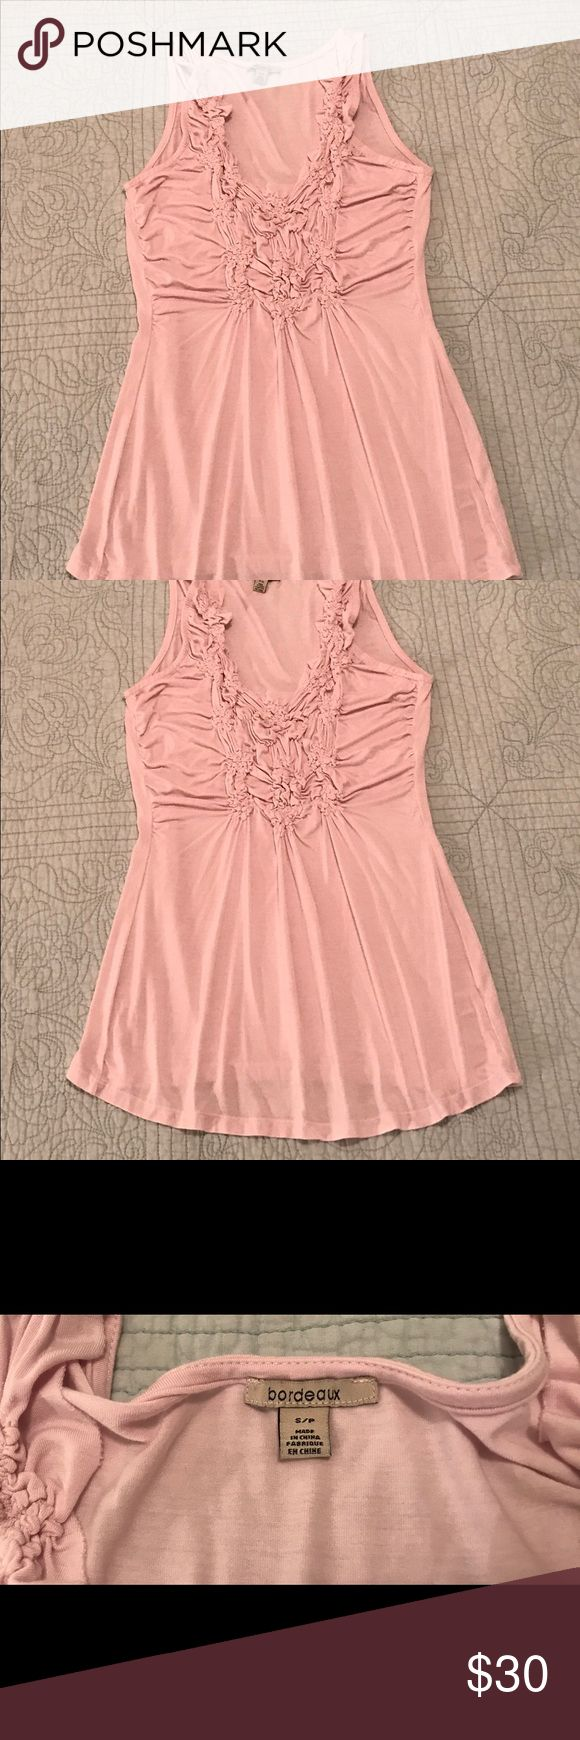 {Anthropologie} Bordeaux, EUC, Light-Pink Top Excellent, Pre-Owned Condition; No Signs of Wear  Beautiful, Light-Pink Sleeveless, Flowy Top; Pretty, Shirring & Ruching Makes it Flattering; V-Neck; Soft & Plenty of Stretch   Ladies Size Small Brand is Bordeaux for {Anthropologie}  95% Rayon, 5% Spandex Hand-Wash, Cold; Lay Flat to Dry Can be Dry-Cleaned Made in China  **BUNDLE & SAVE!!! **DOG-FRIENDLY HOME Anthropologie Tops Blouses